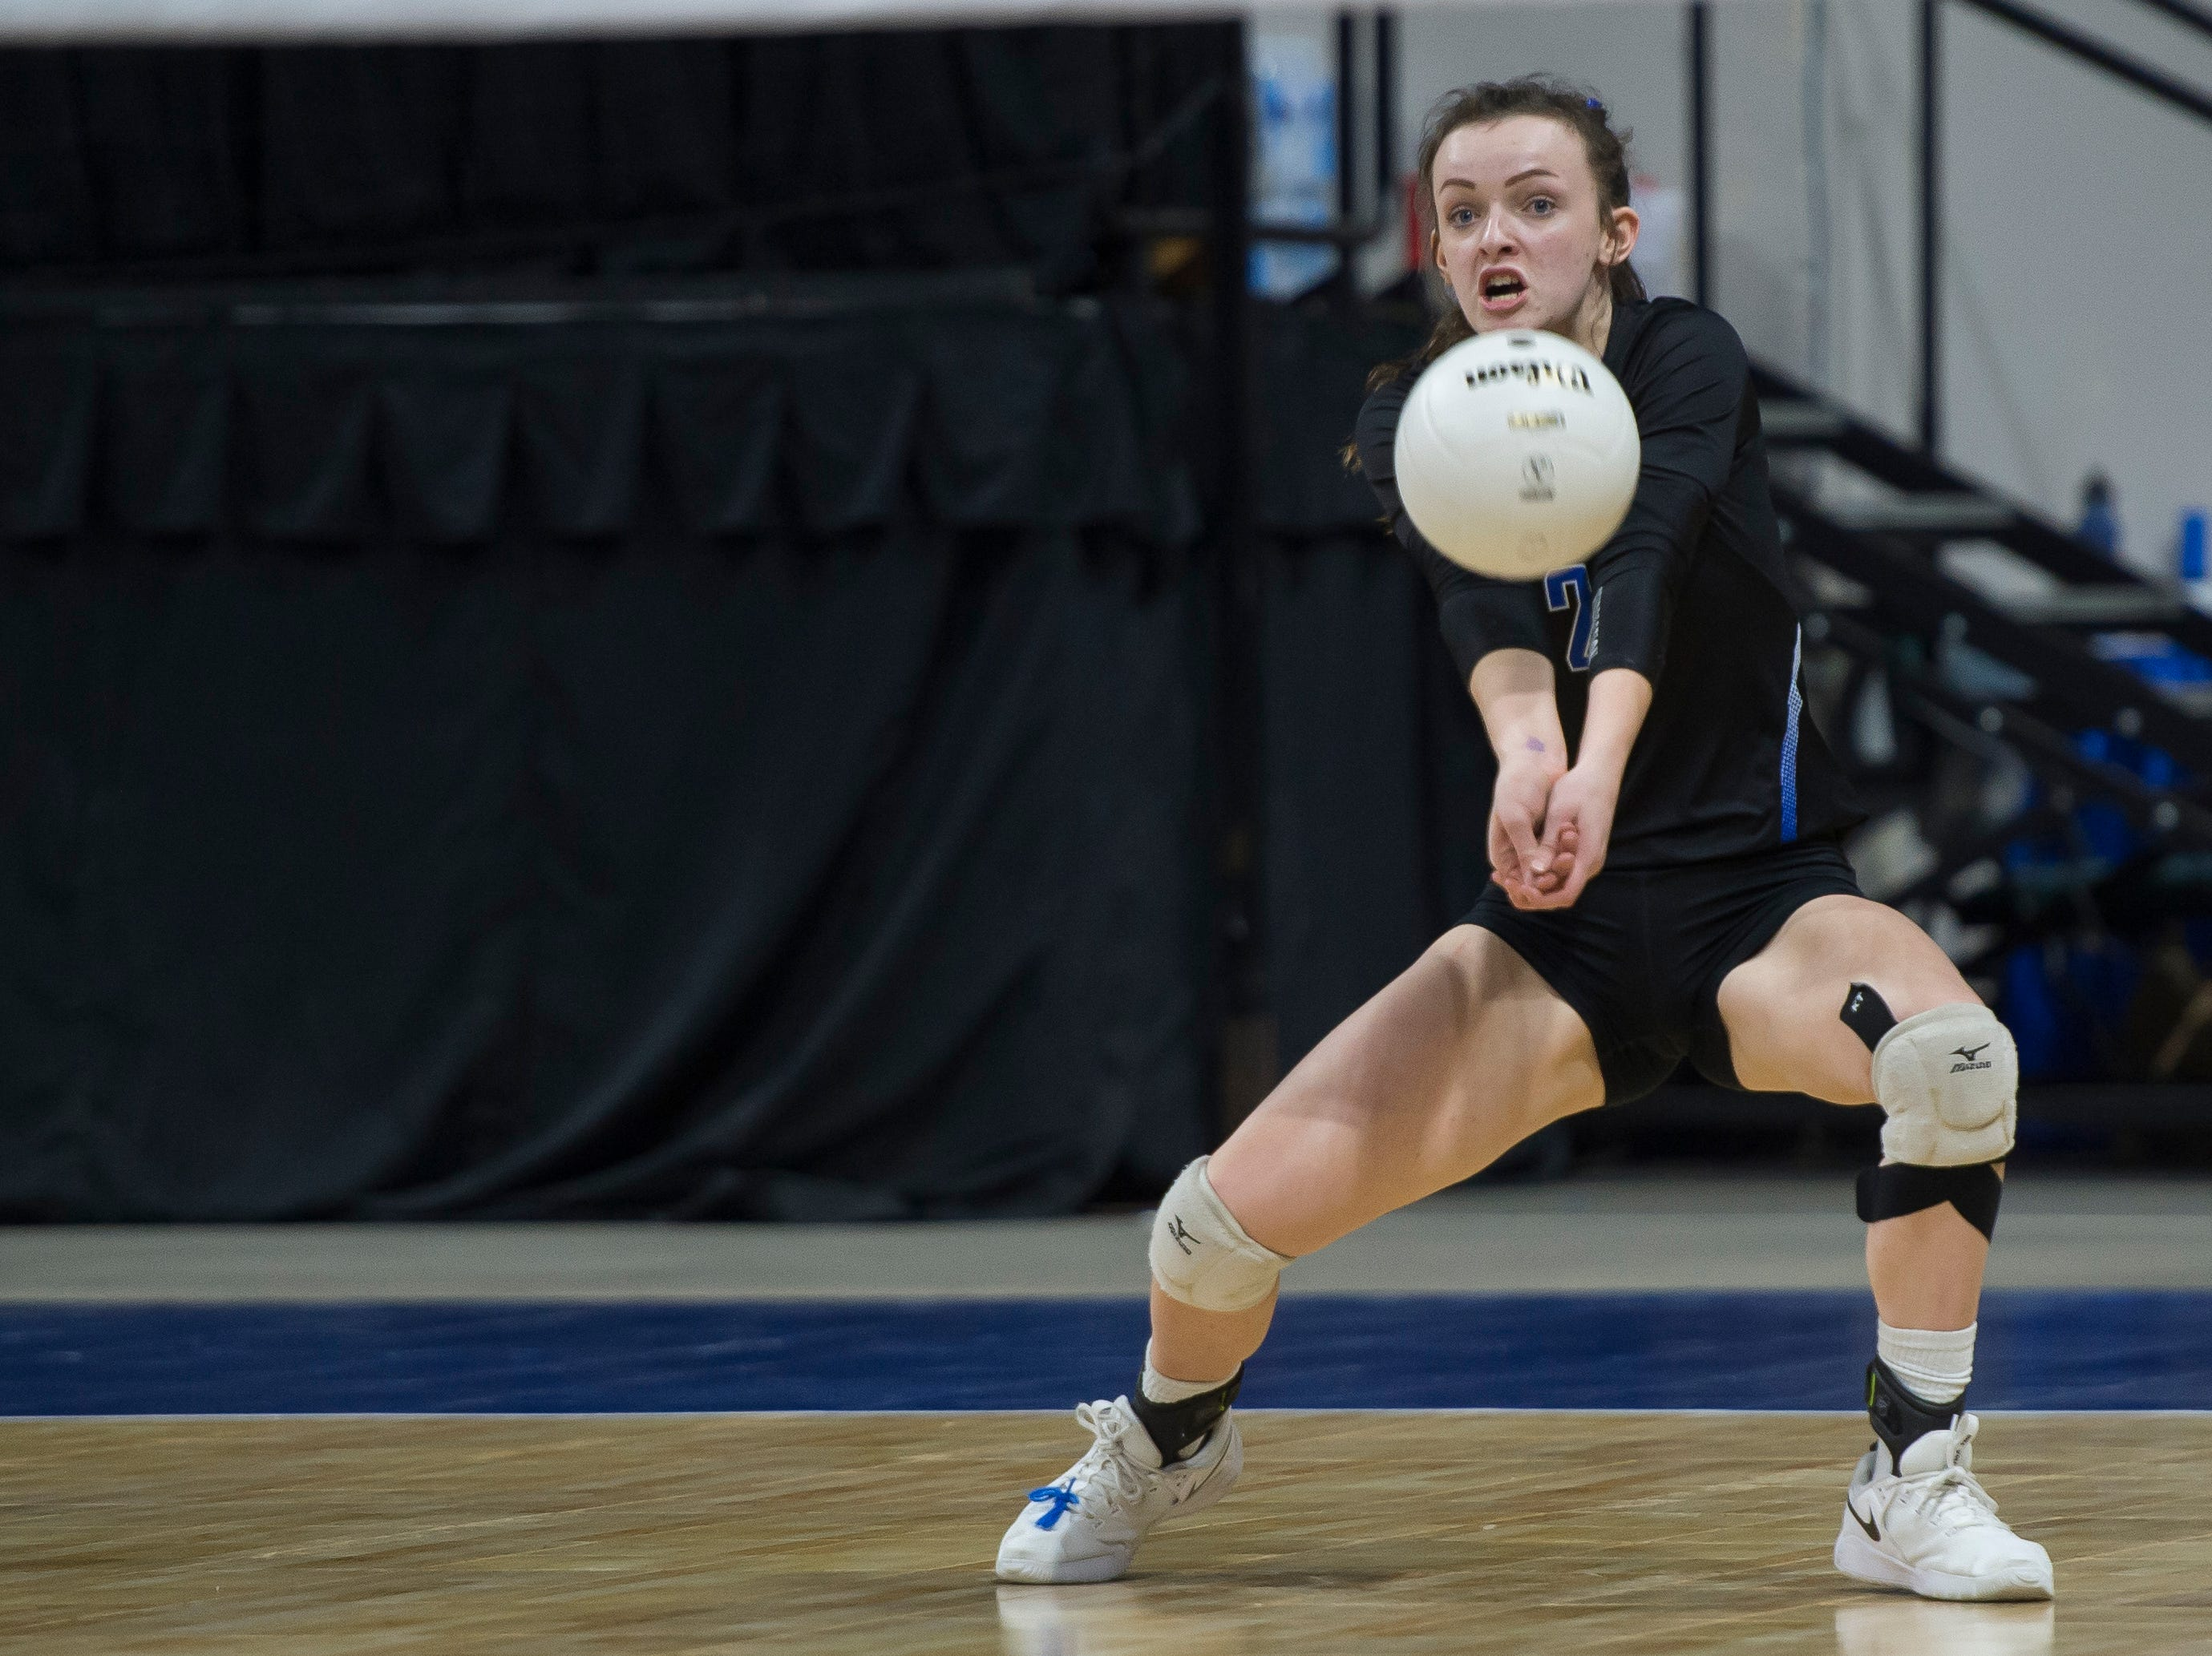 Resurrection Christian freshman Aly Reeser (2) digs a ball during a first round state game against Faith Christian on Thursday, Nov. 8, 2018, at the Denver Coliseum in Denver, Colo.